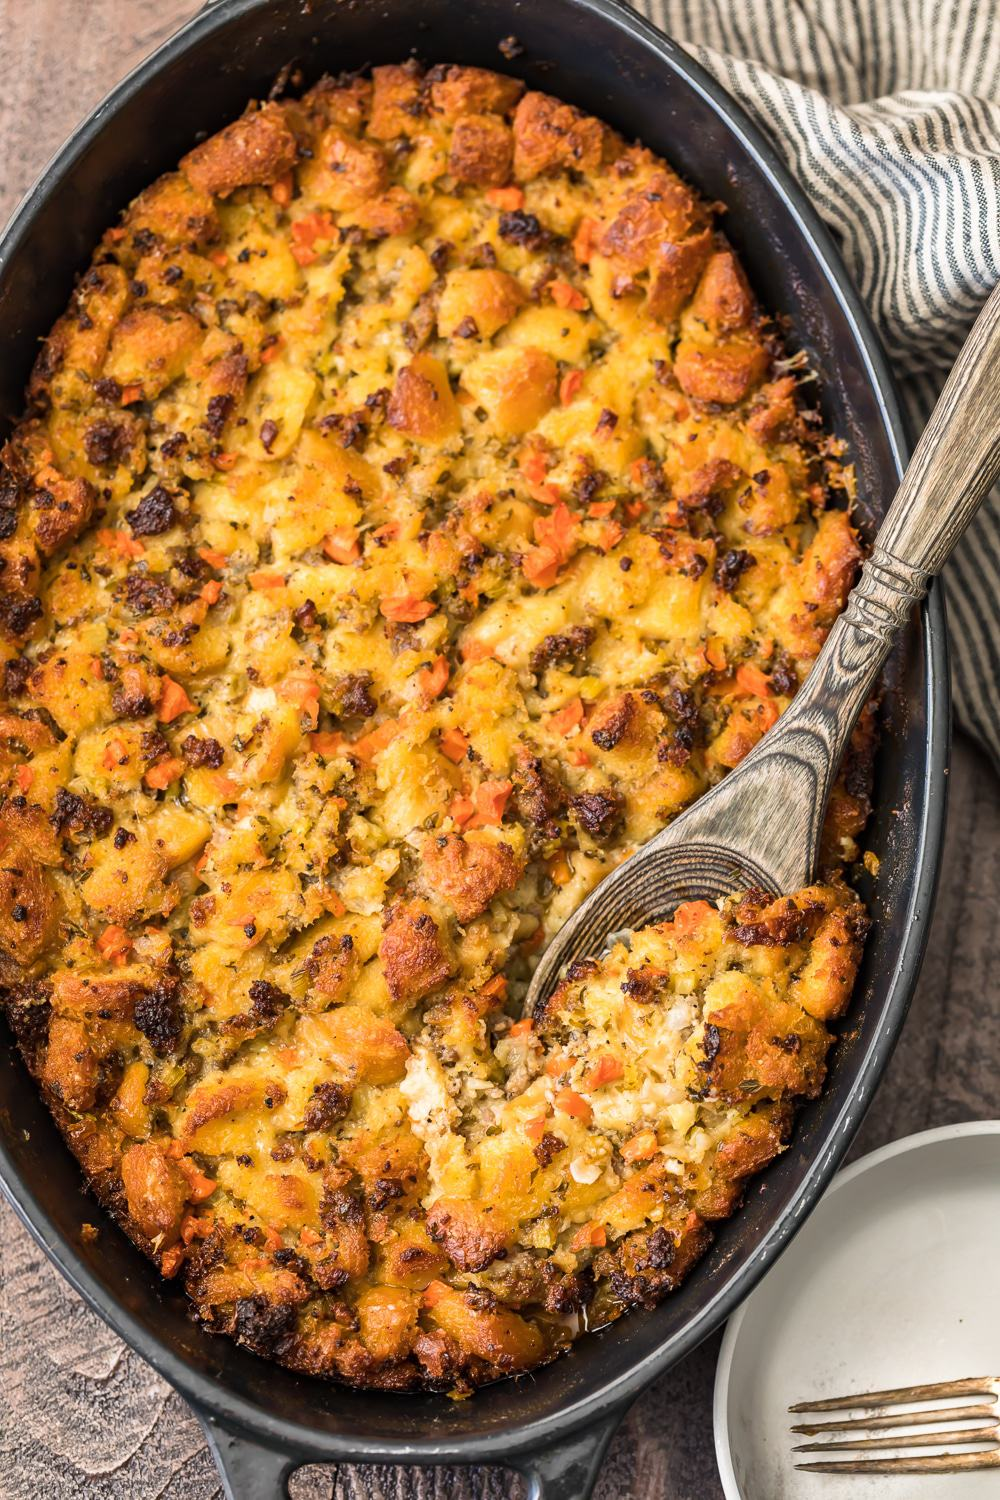 baked sausage stuffing in a black casserole dish